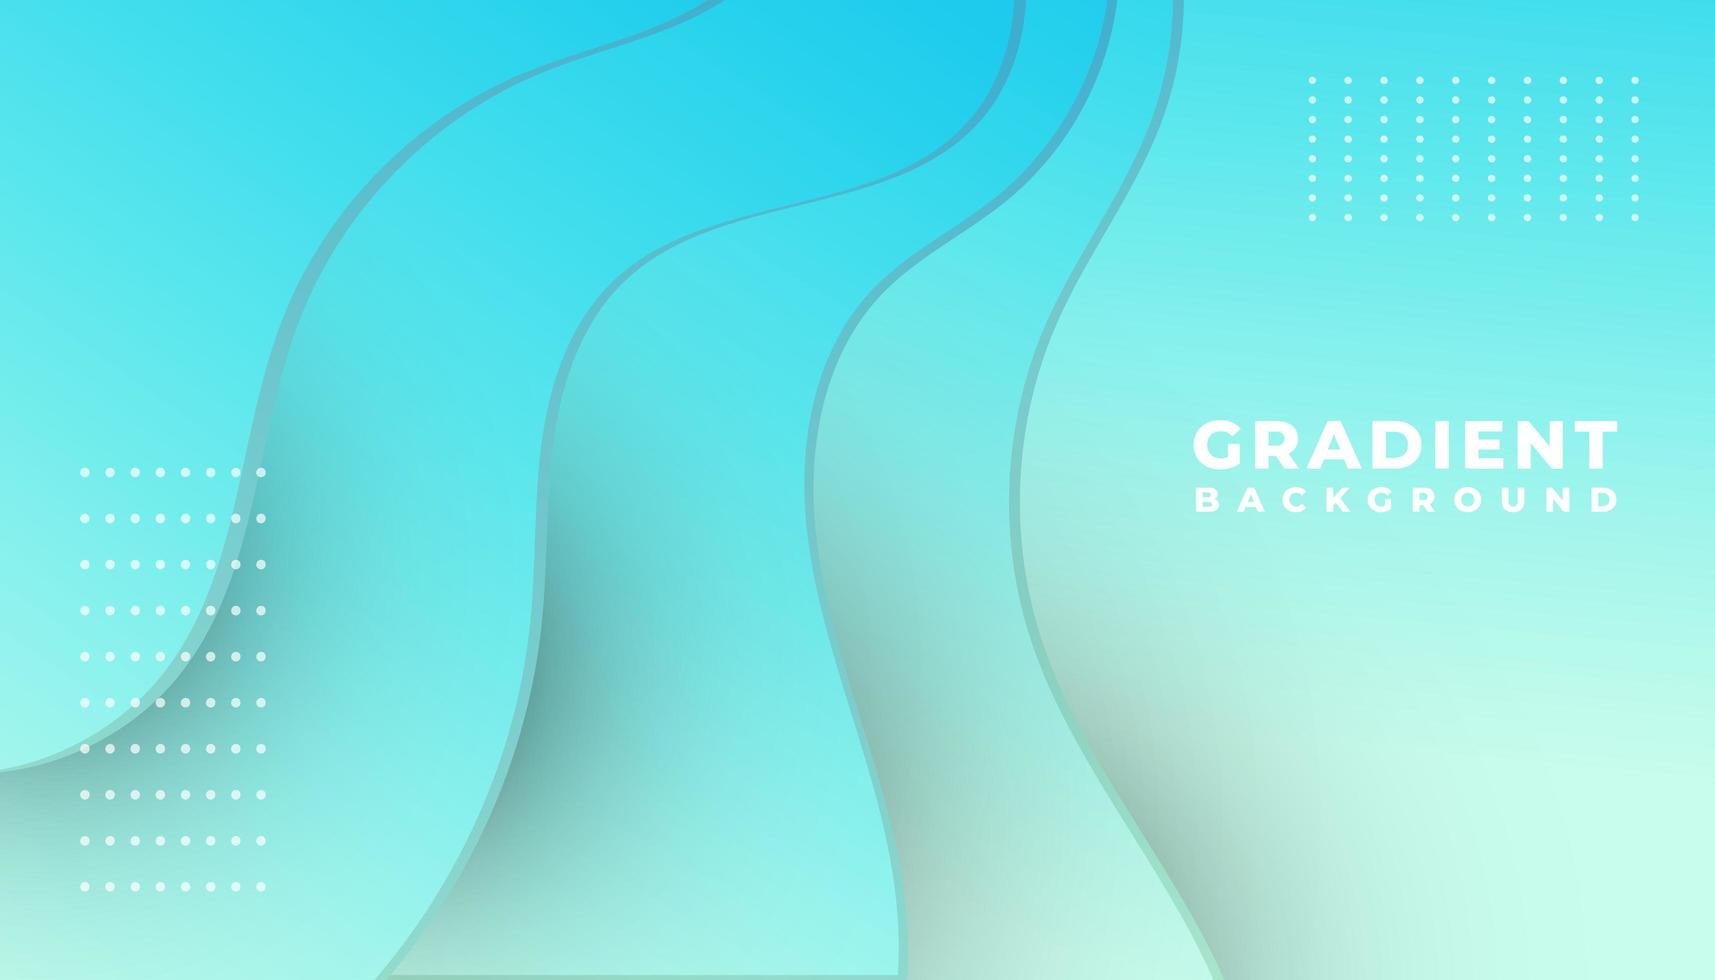 Blue Gradient Overlapping Waves Background